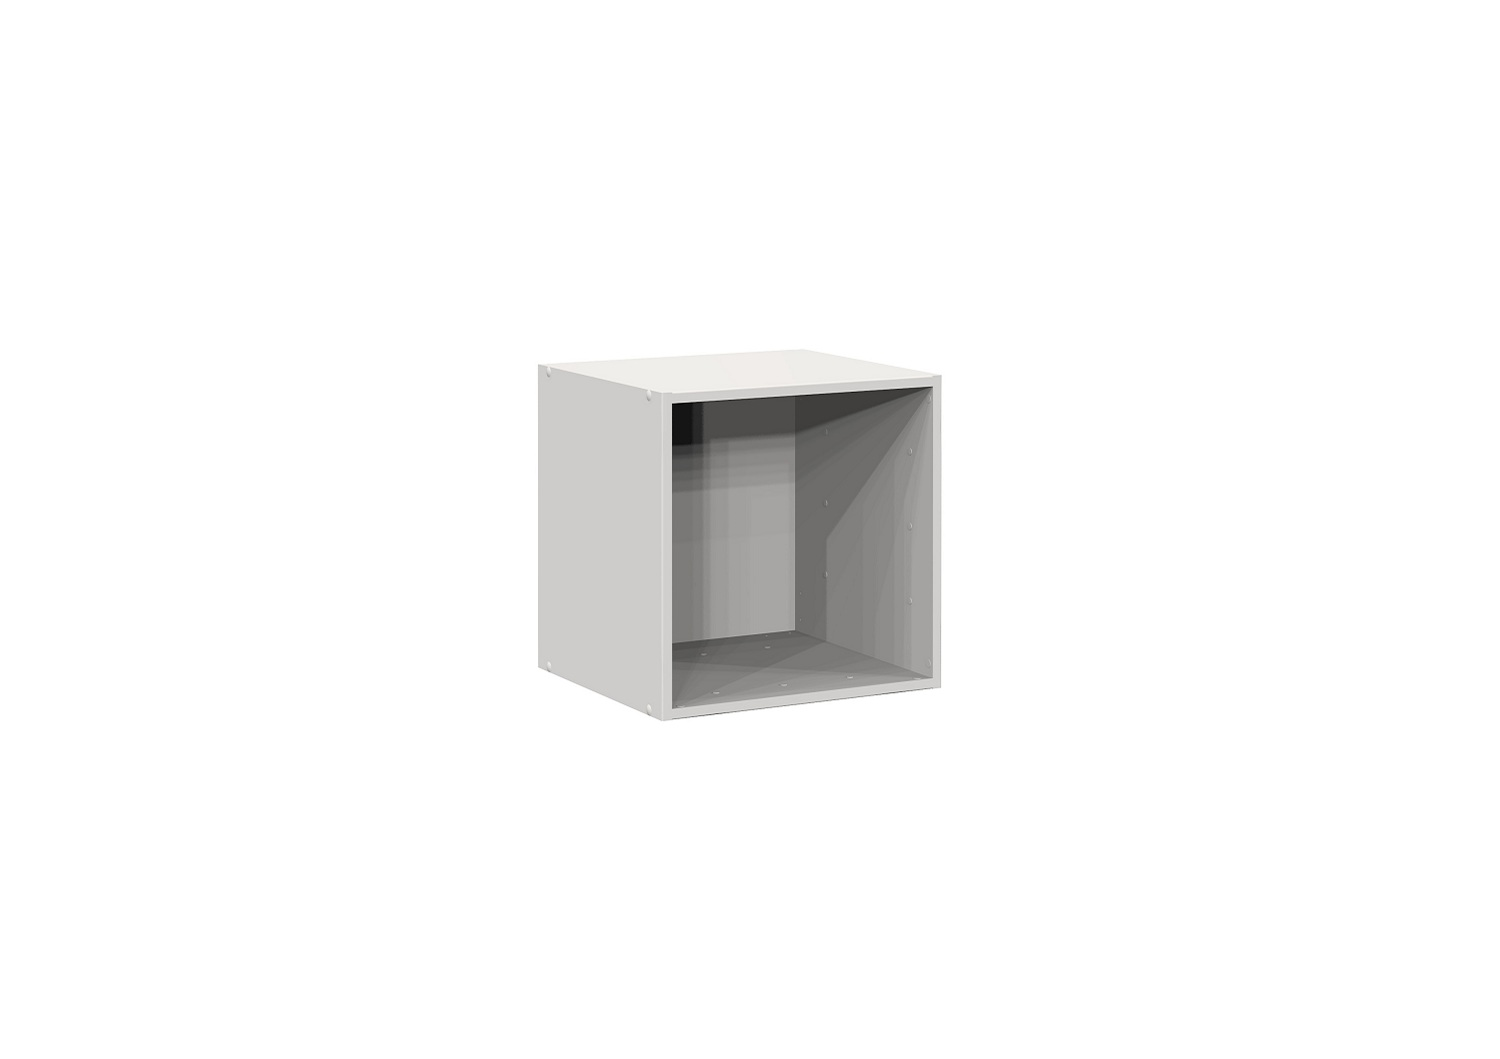 Bilrich Storage Furniture - Multi Kaz 1x1 Cube White